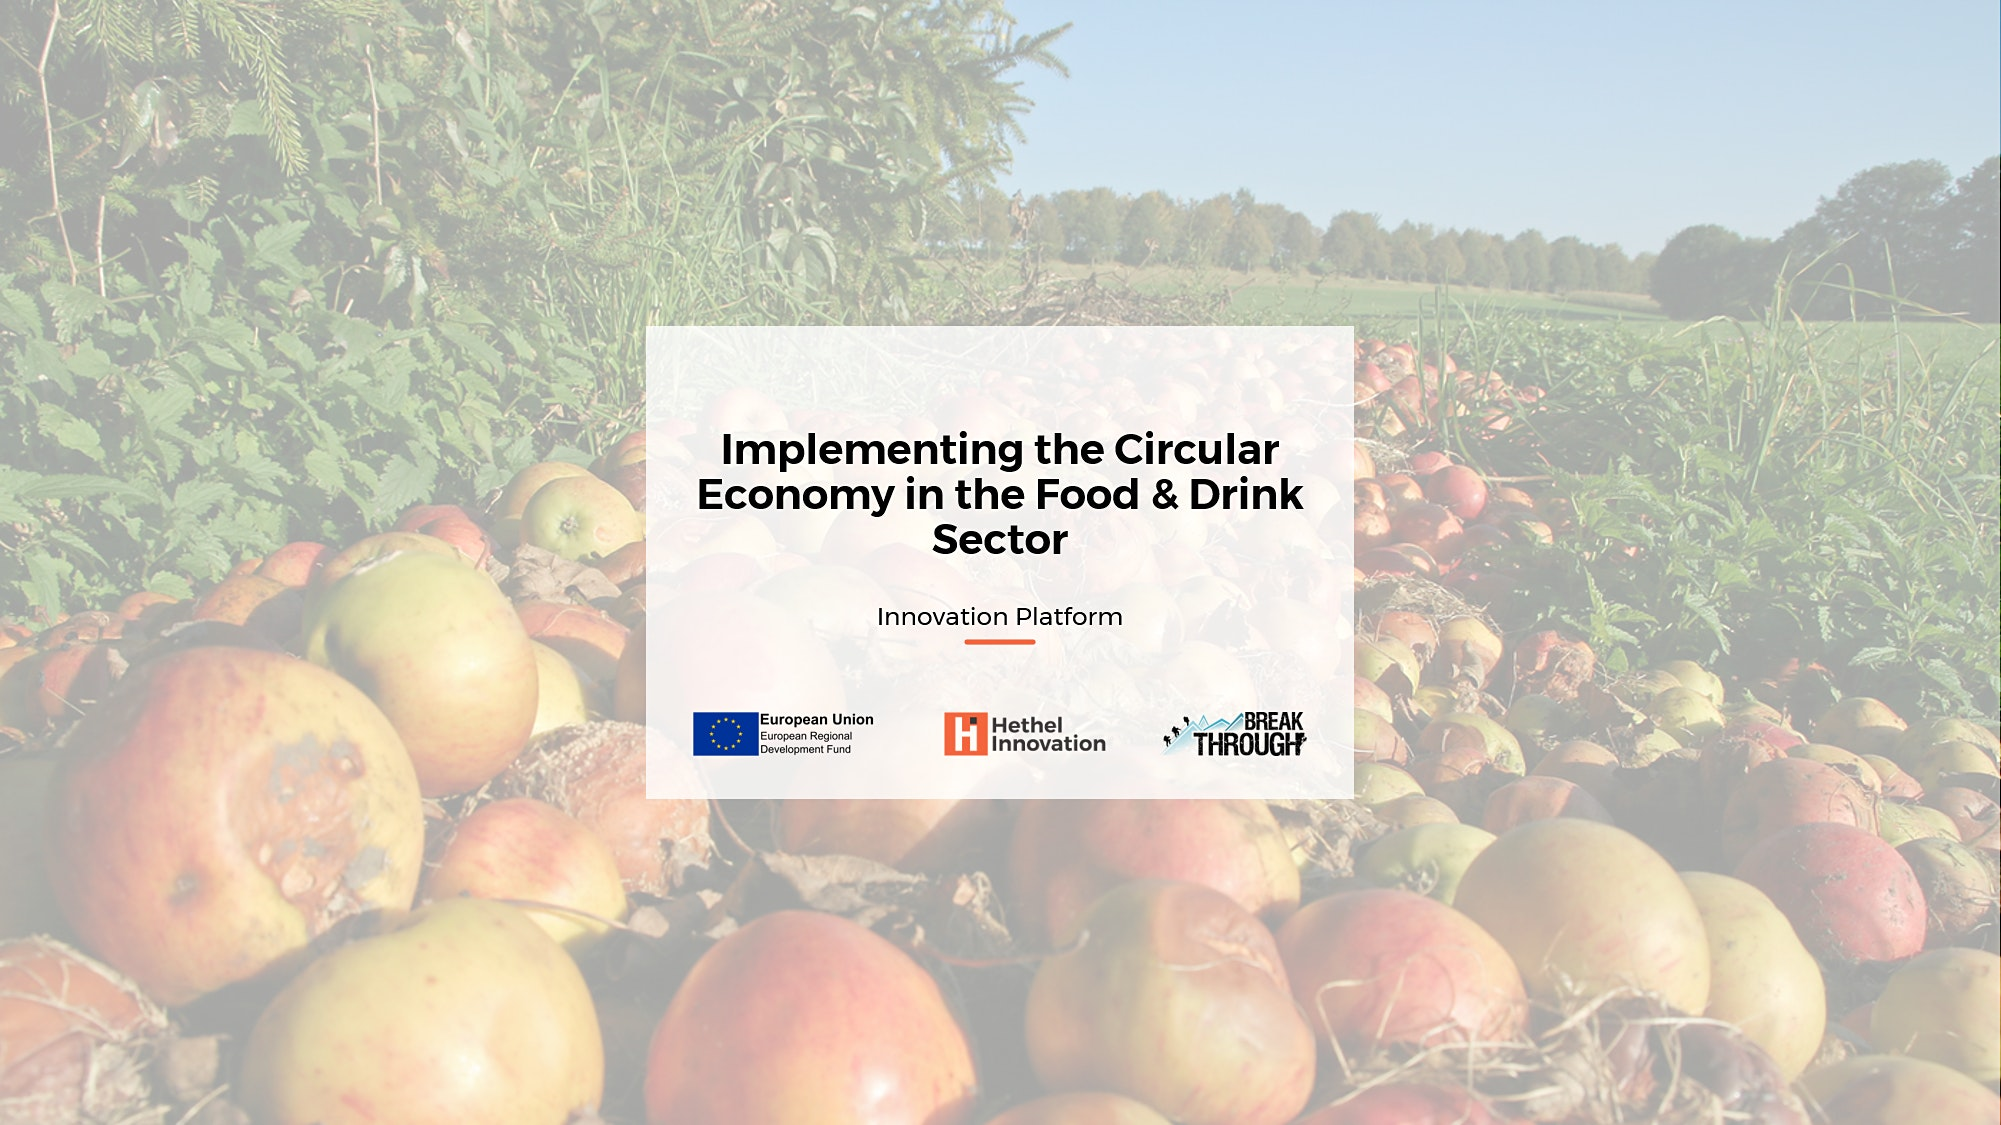 Implementing the Circular Economy in the Food & Drink Sector